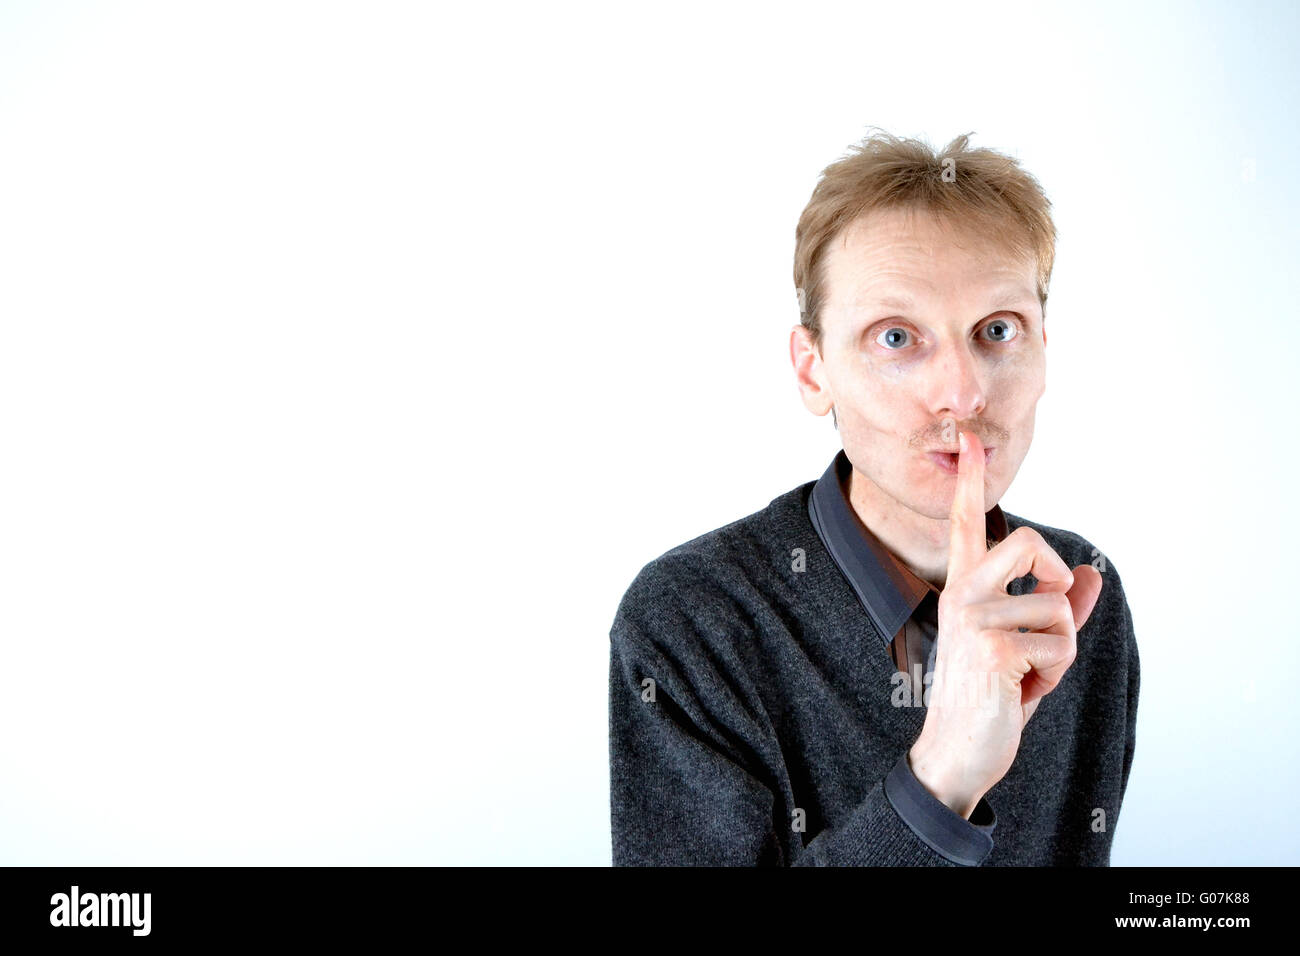 Blonde man who has his finger at the mouth Stock Photo